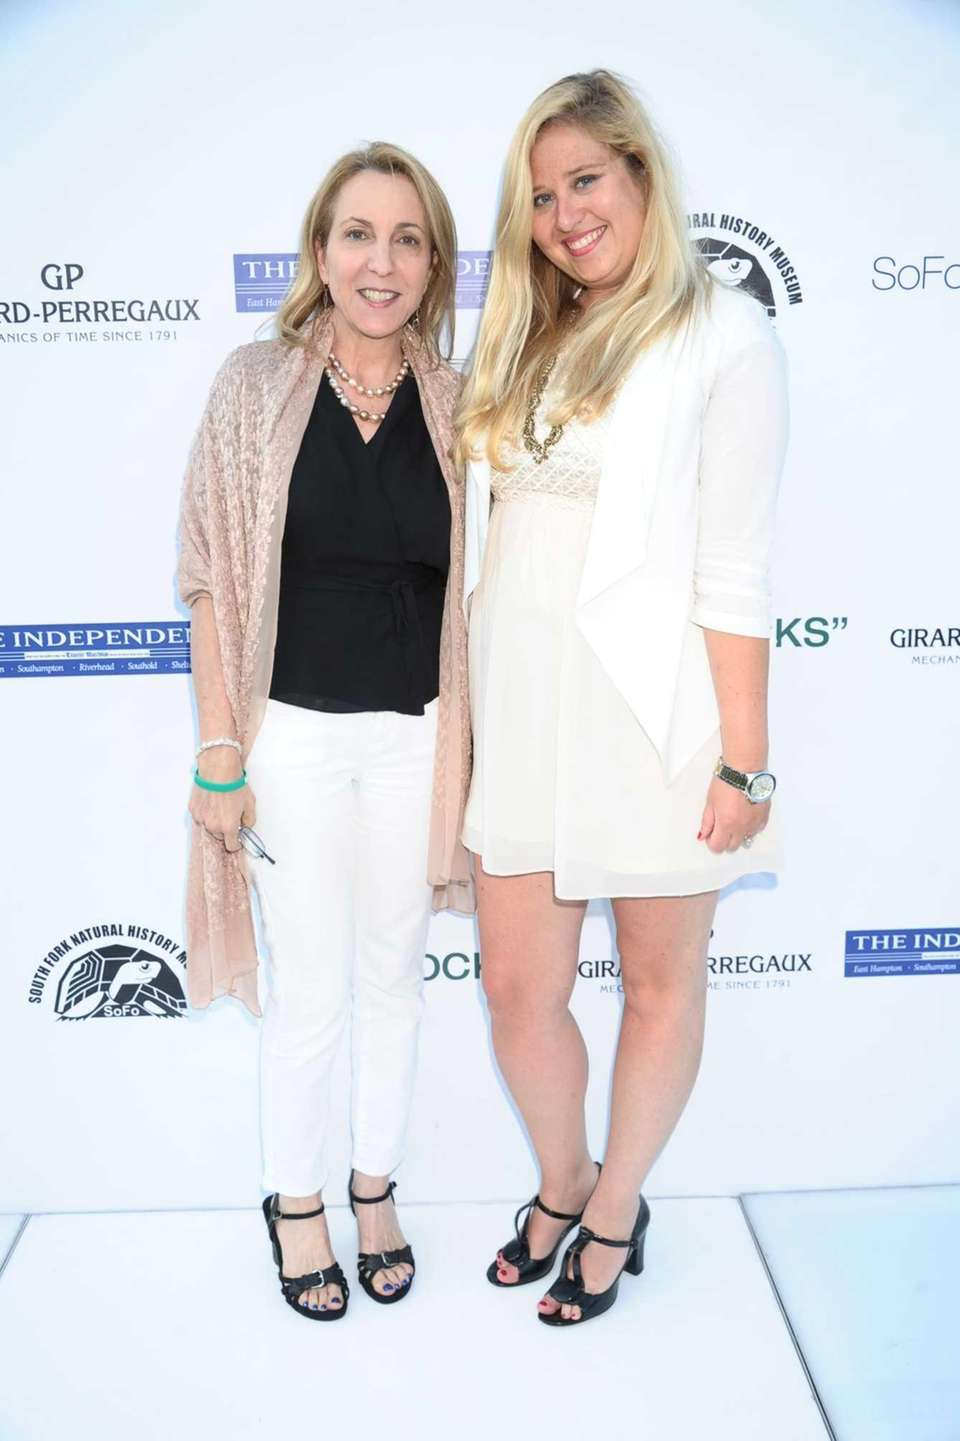 Susan Rockefeller and Jessica Mackin attend the SOFO